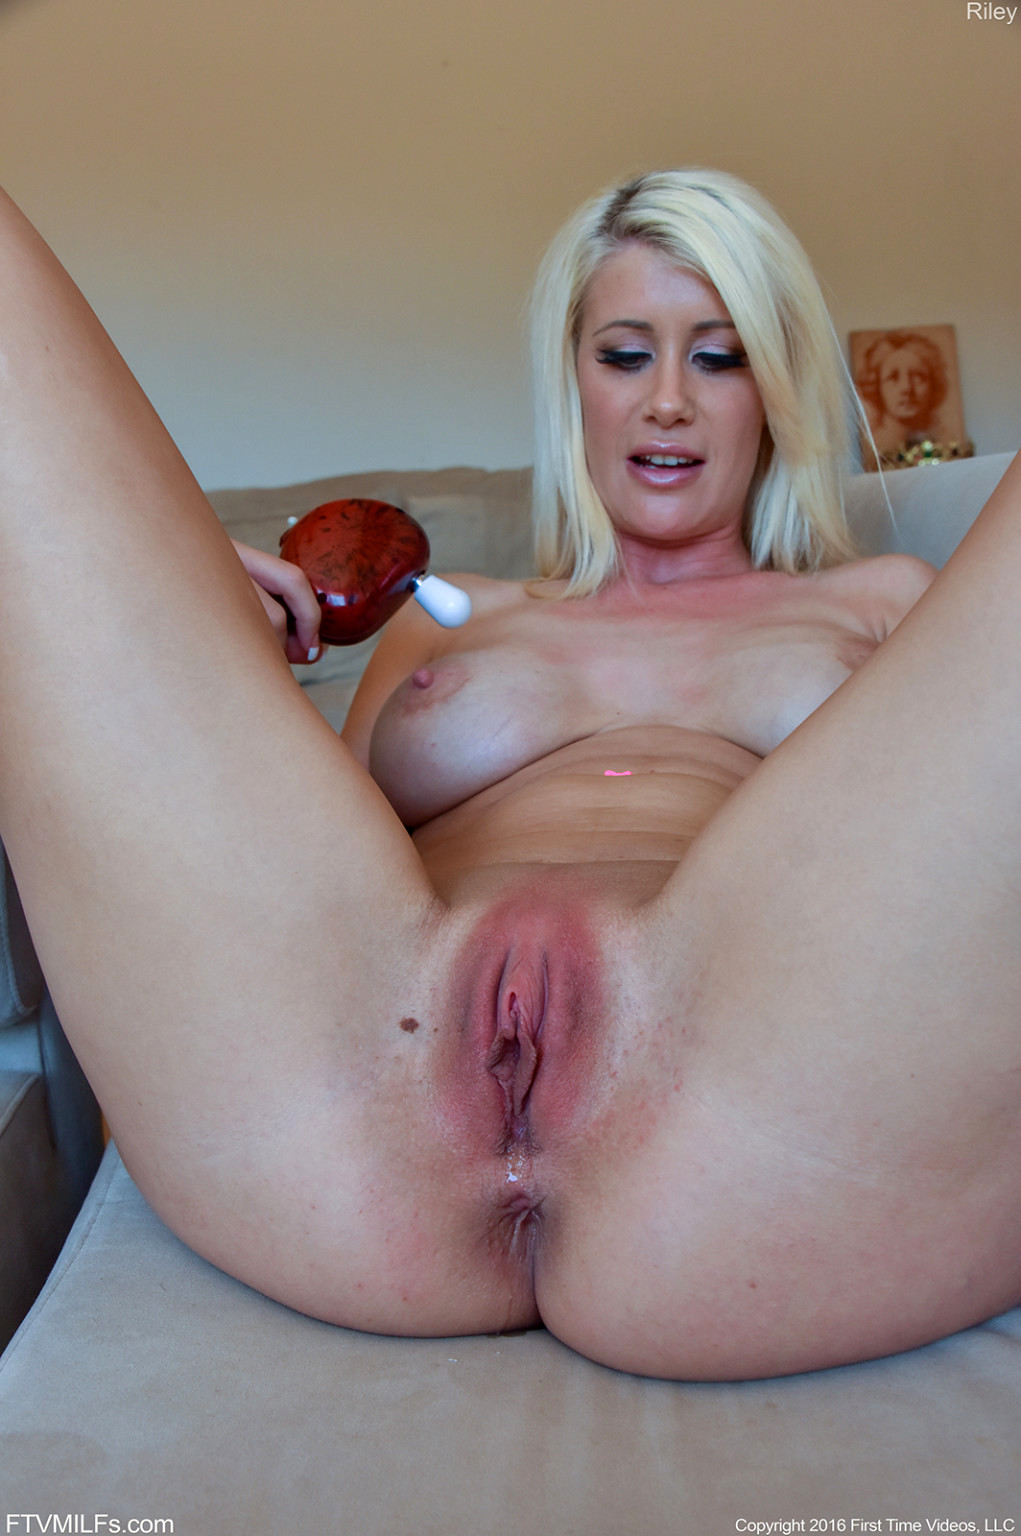 Sex Hd Mobile Pics Ftv Milfs Riley Jenner Traditional Real -8733